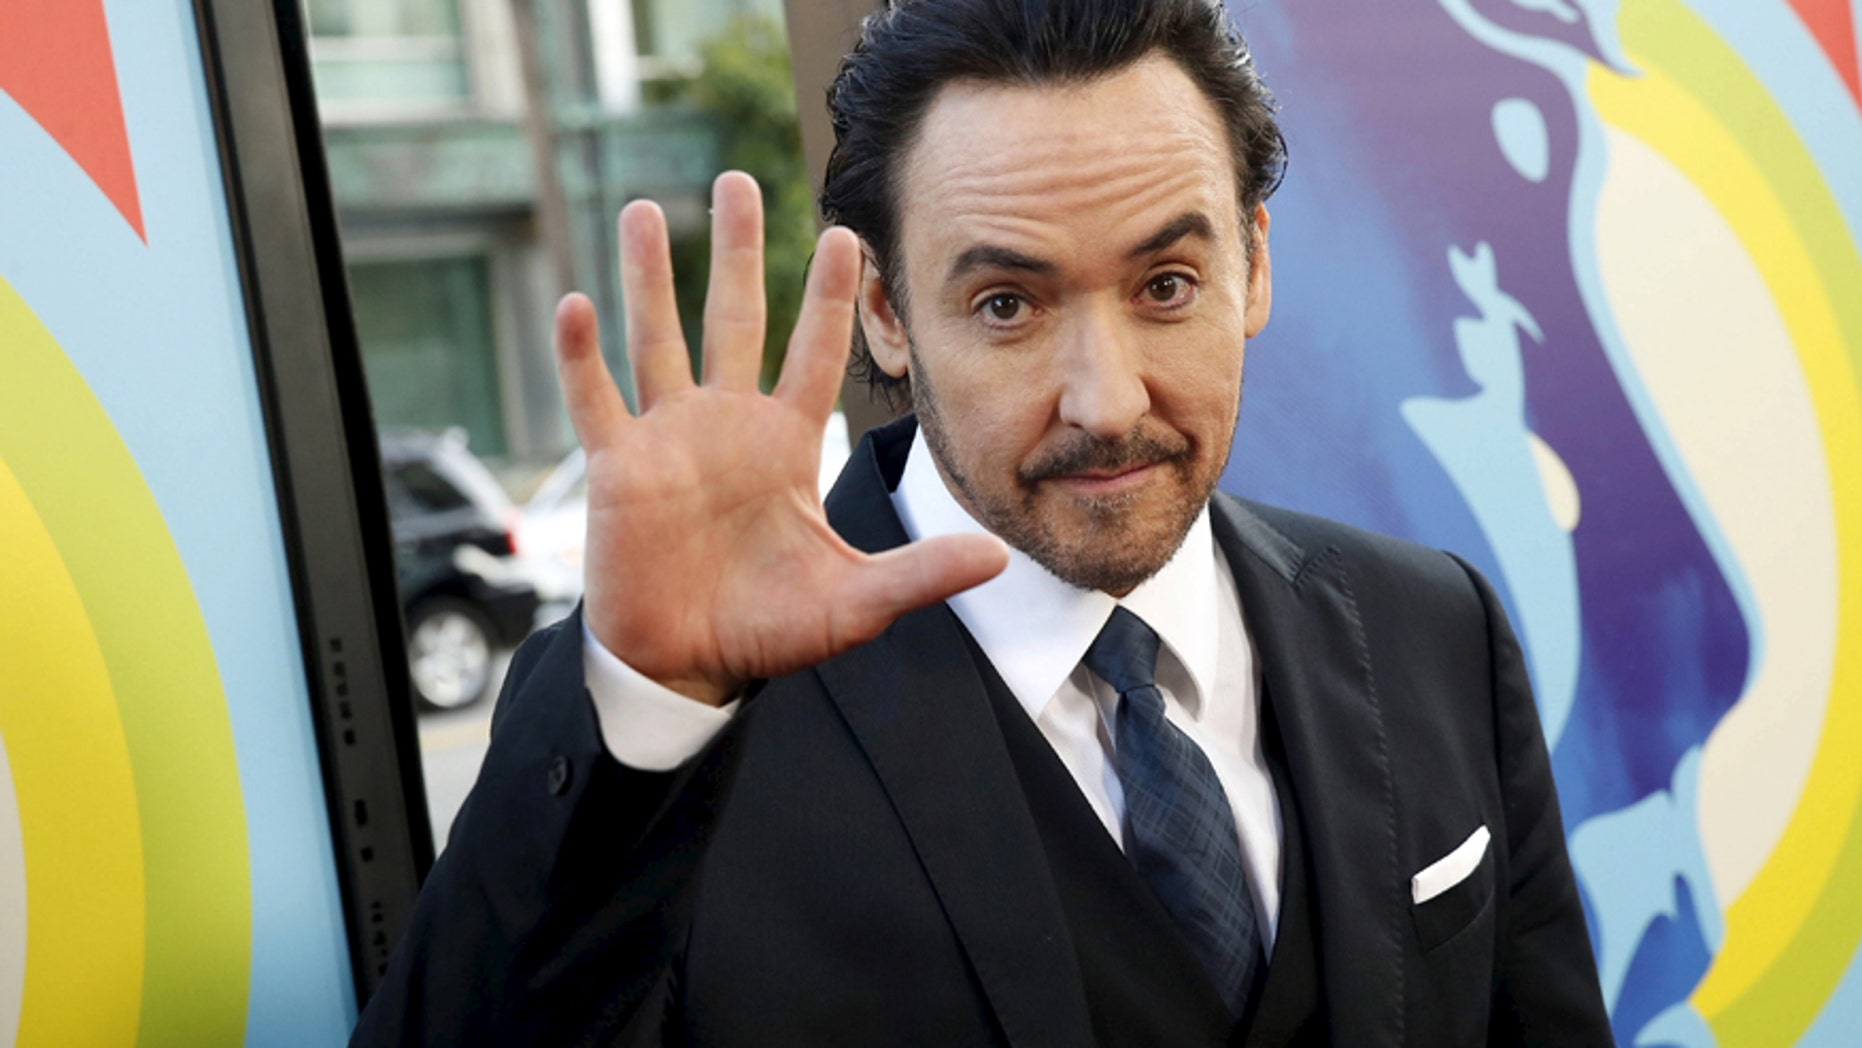 """Actor John Cusack arrives at the premiere of the movie """"Love & Mercy"""" at the Samuel Goldwyn Theater in Beverly Hills, California June 2, 2015."""